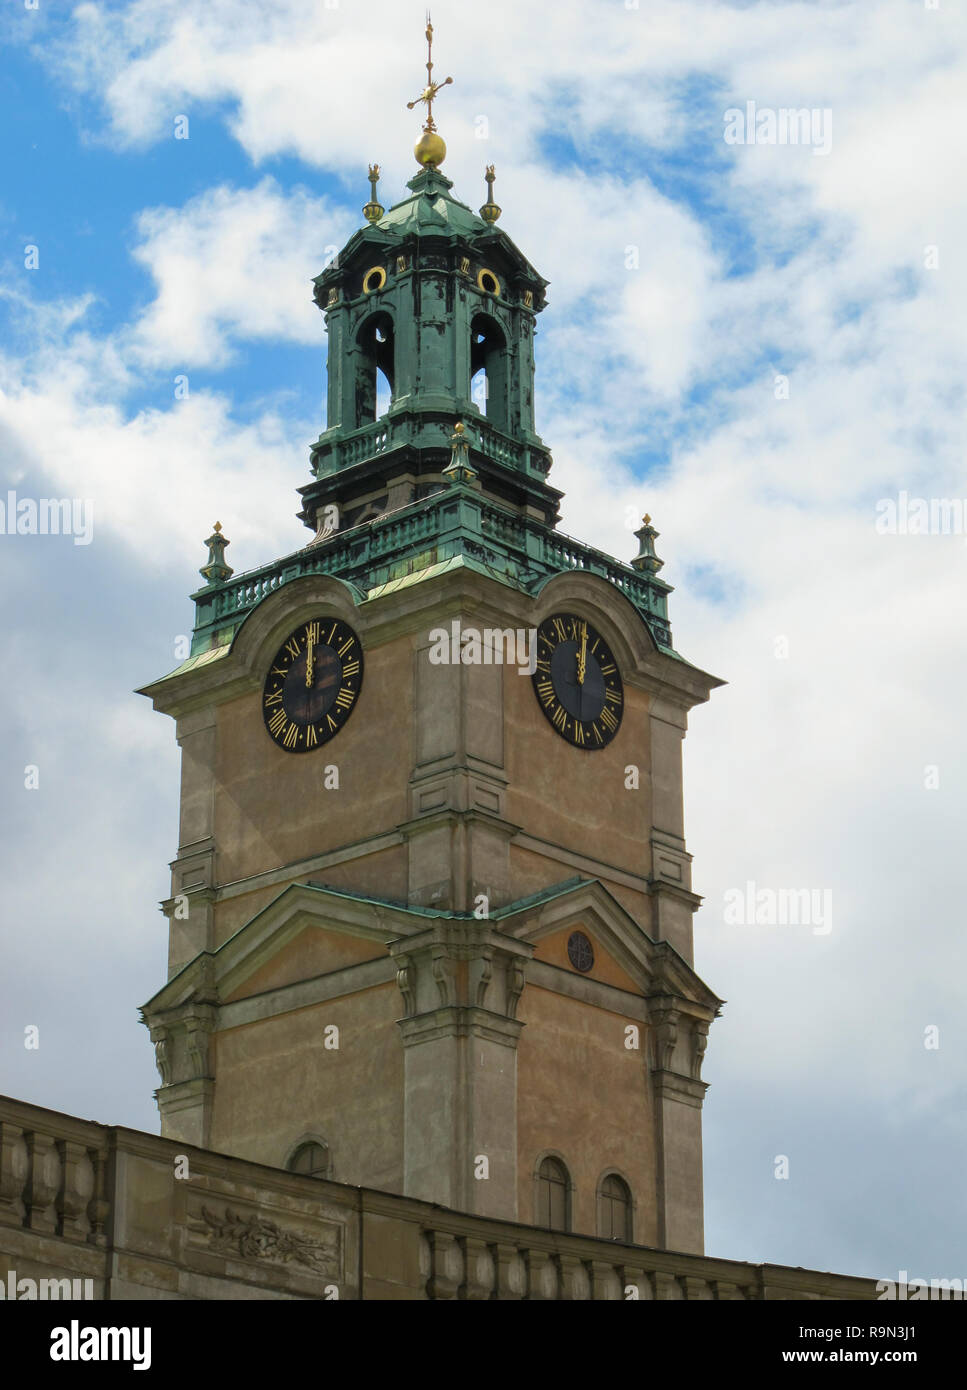 Vertical view of the bell tower of the Cathedral of St. Nicholas Storkyrkan at twelve o'clock. Stockholm, Sweden - Stock Image